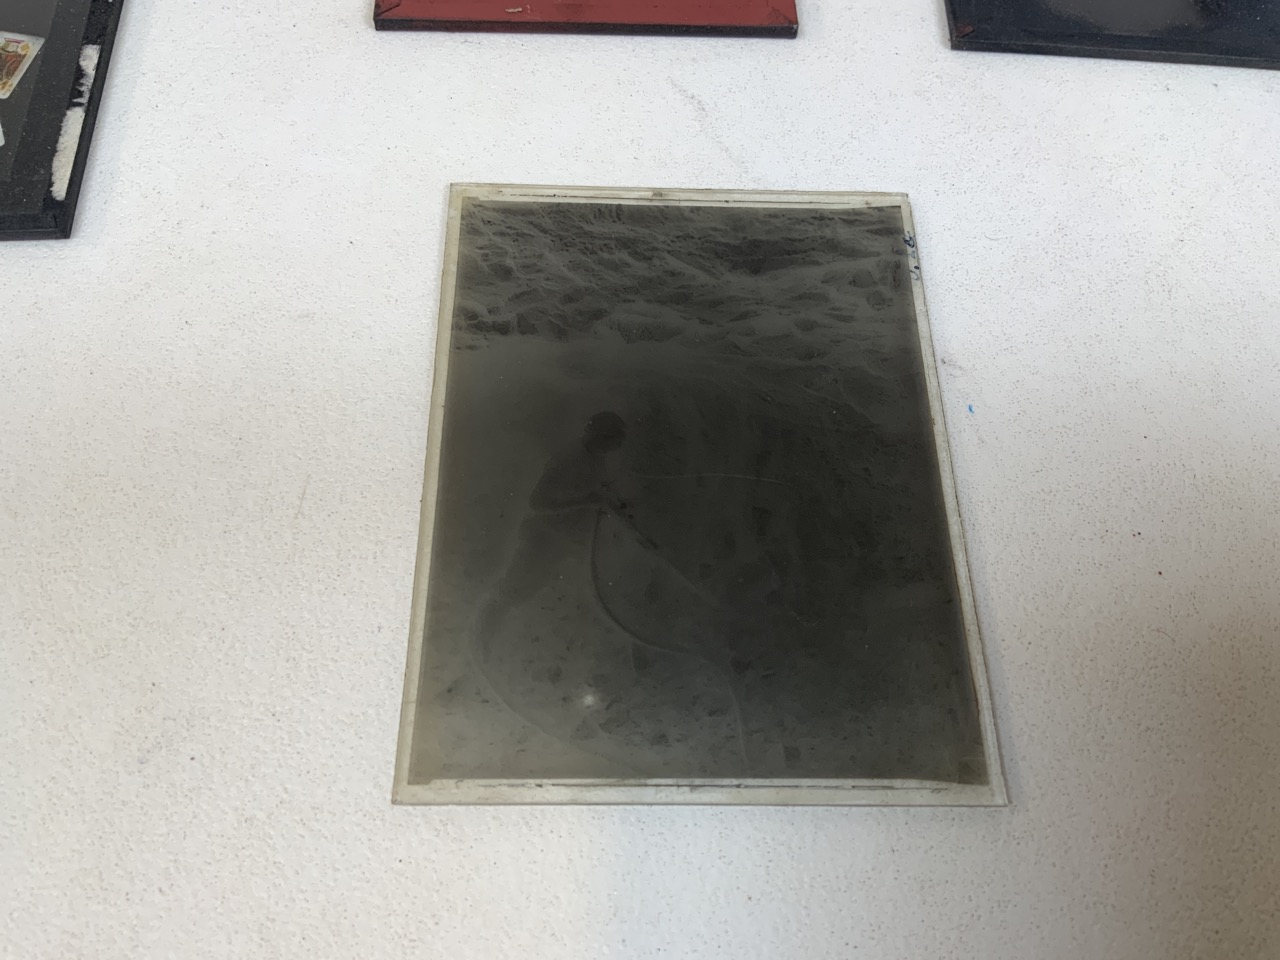 A collection of photographers glass plates including images of flowers, playing cards and - Image 2 of 4